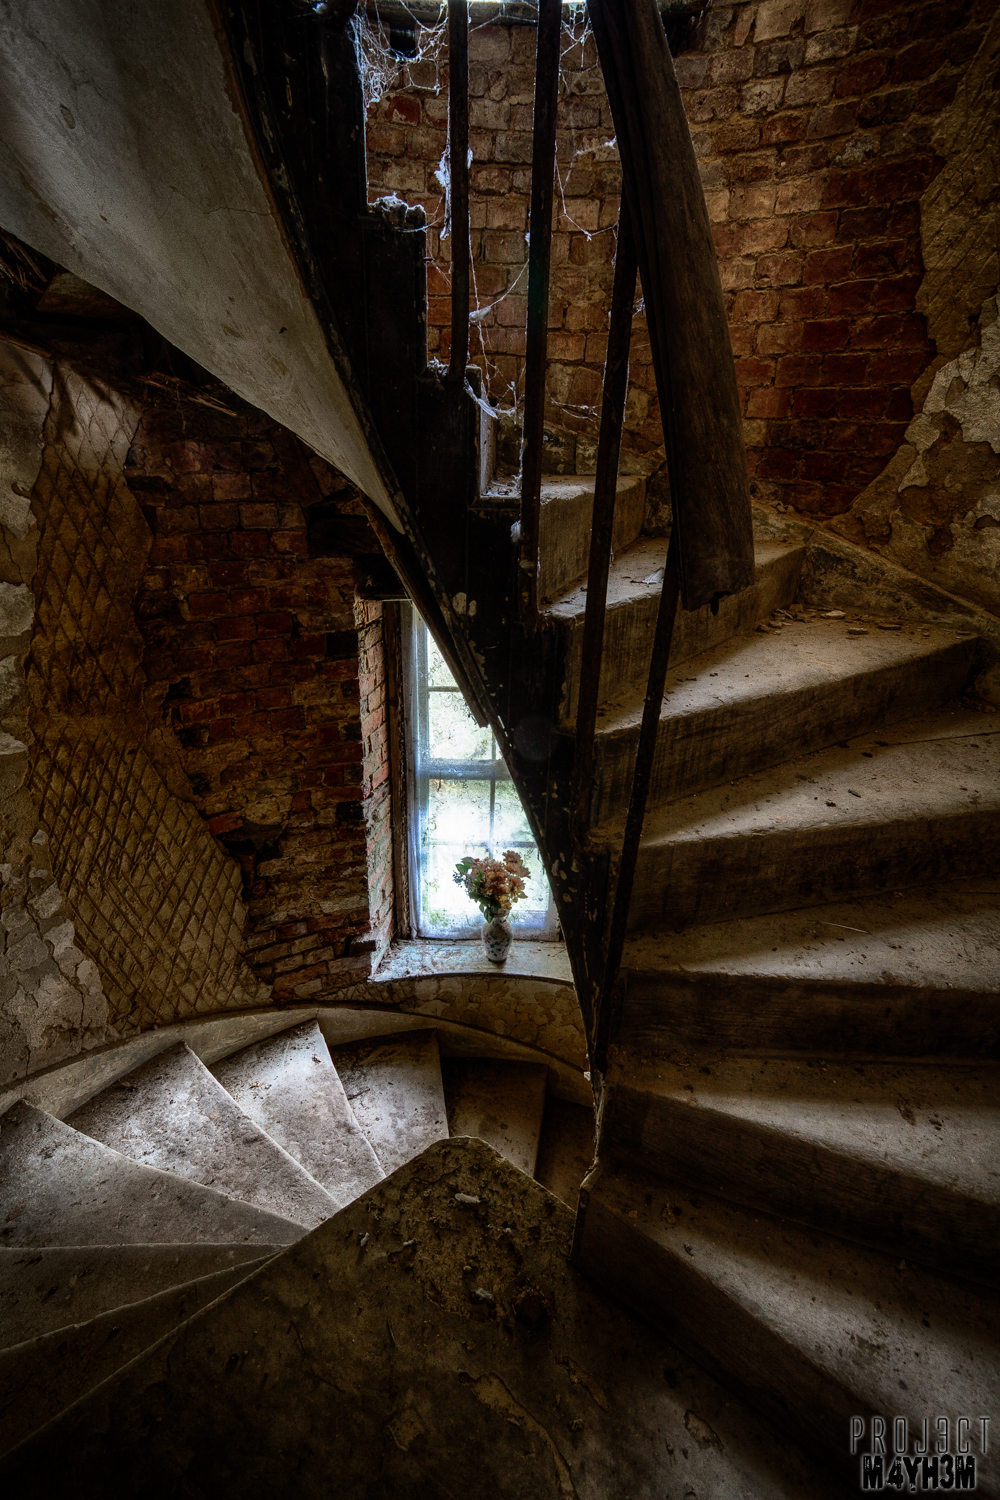 Peartree Manor Spiral Staircase